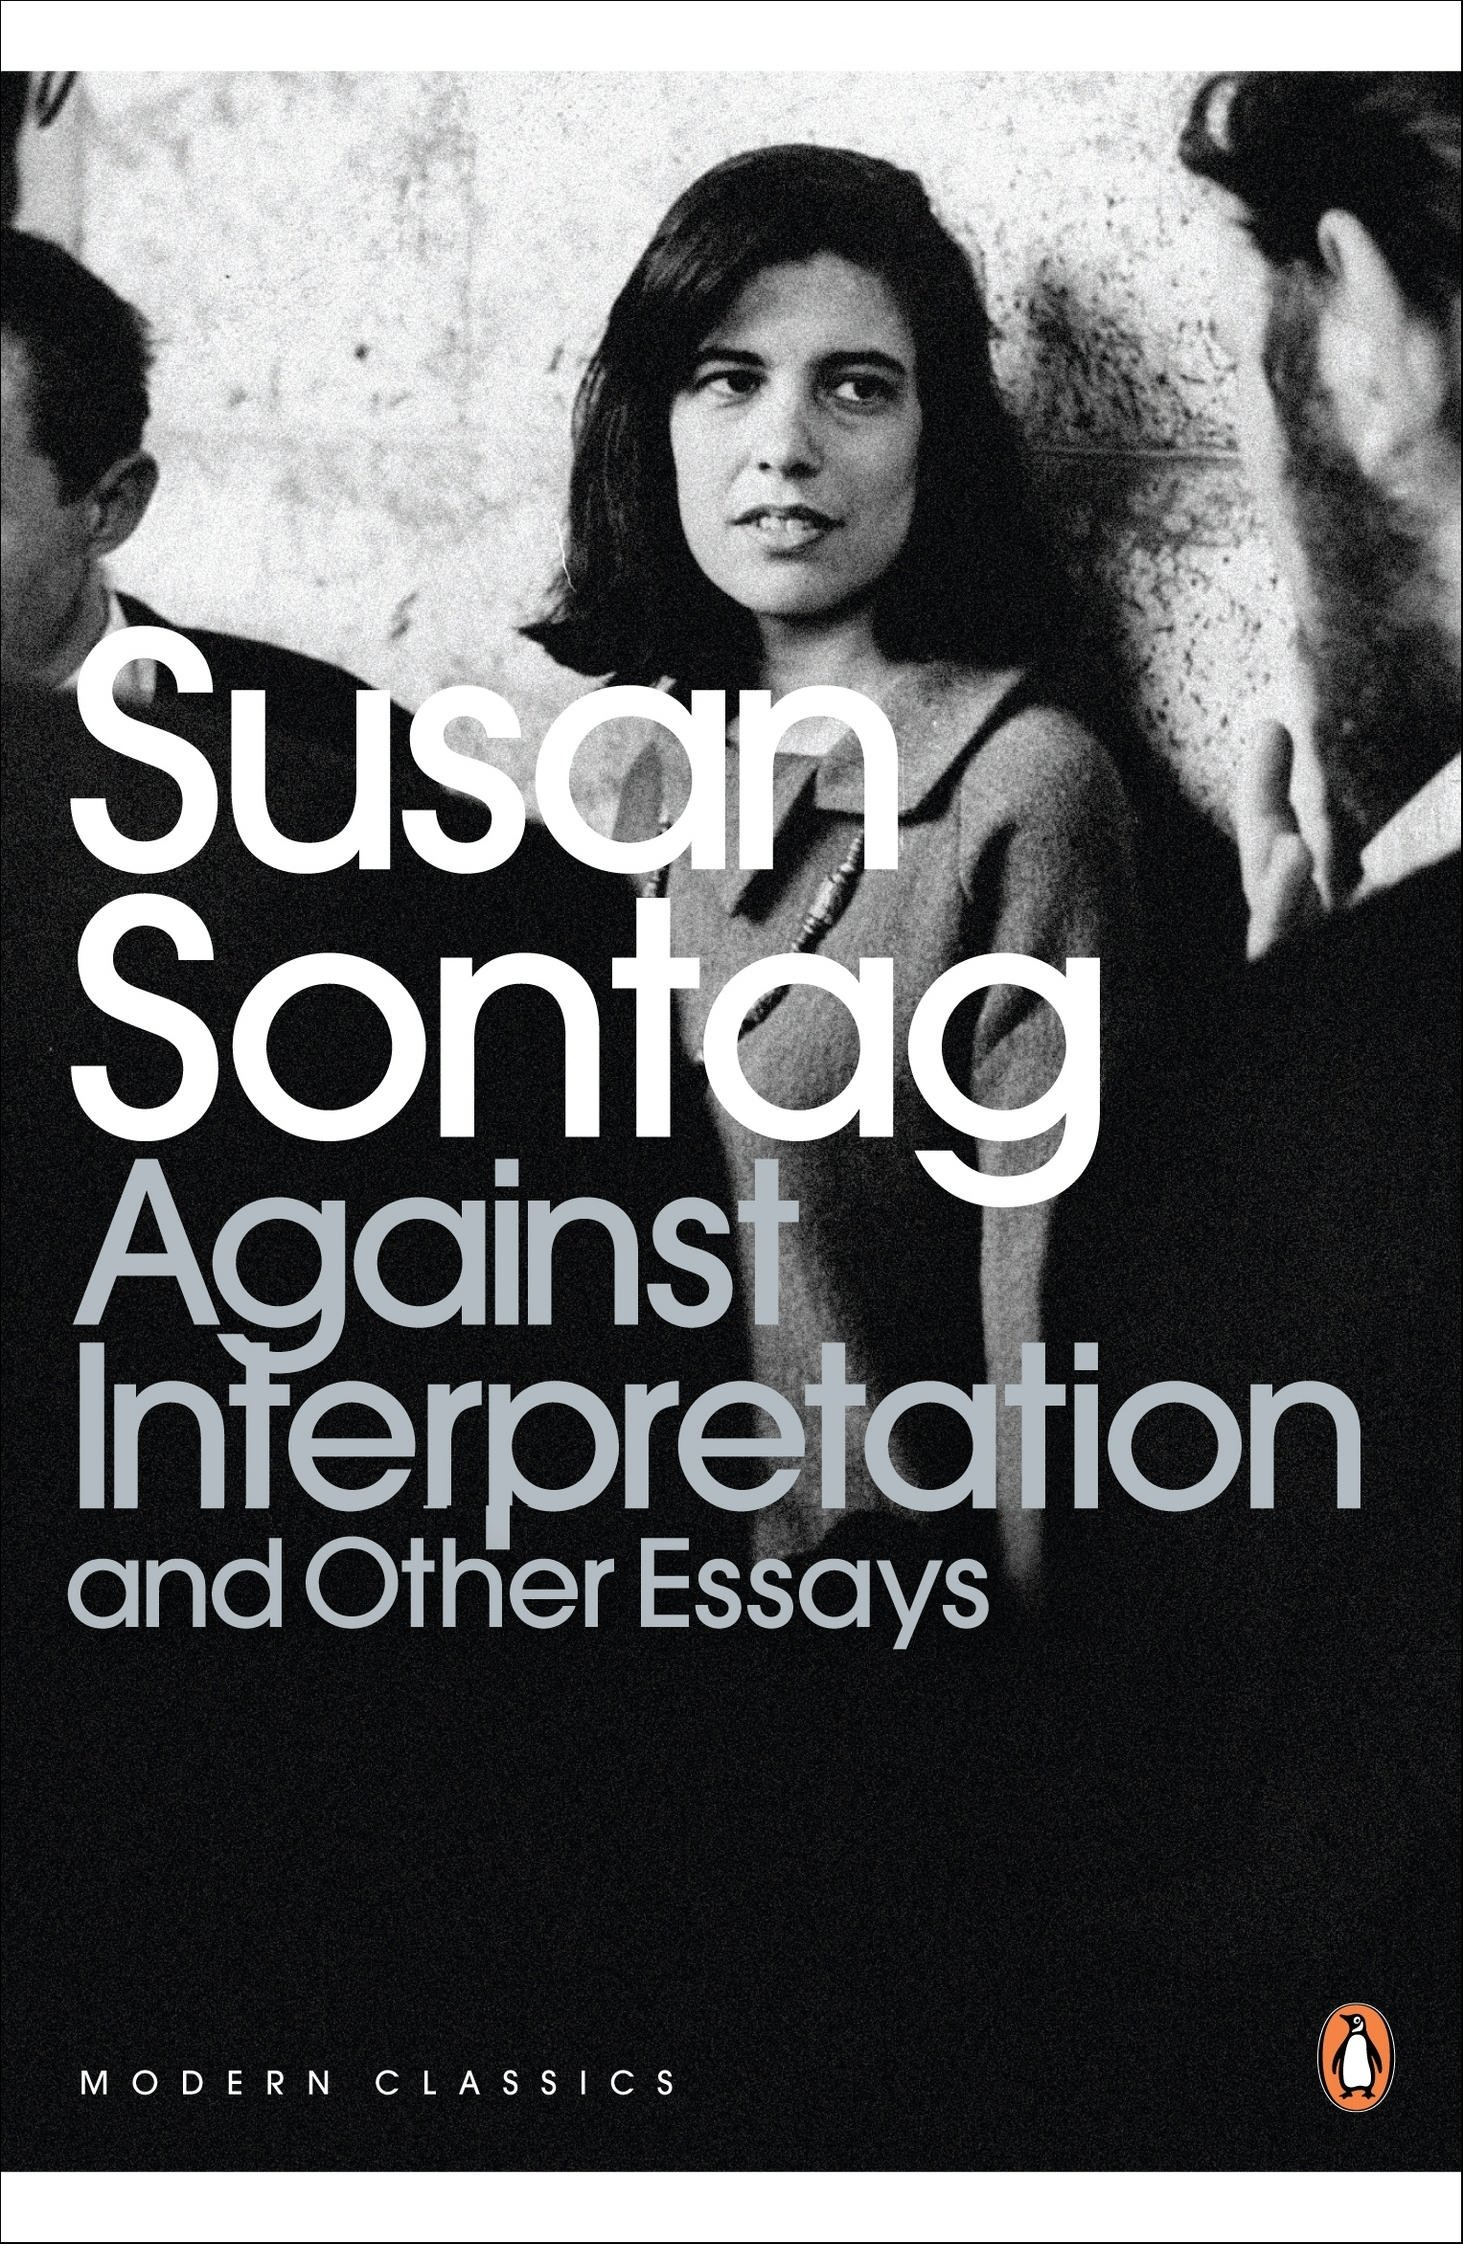 Susan sontag against interpretation and other essays pdf